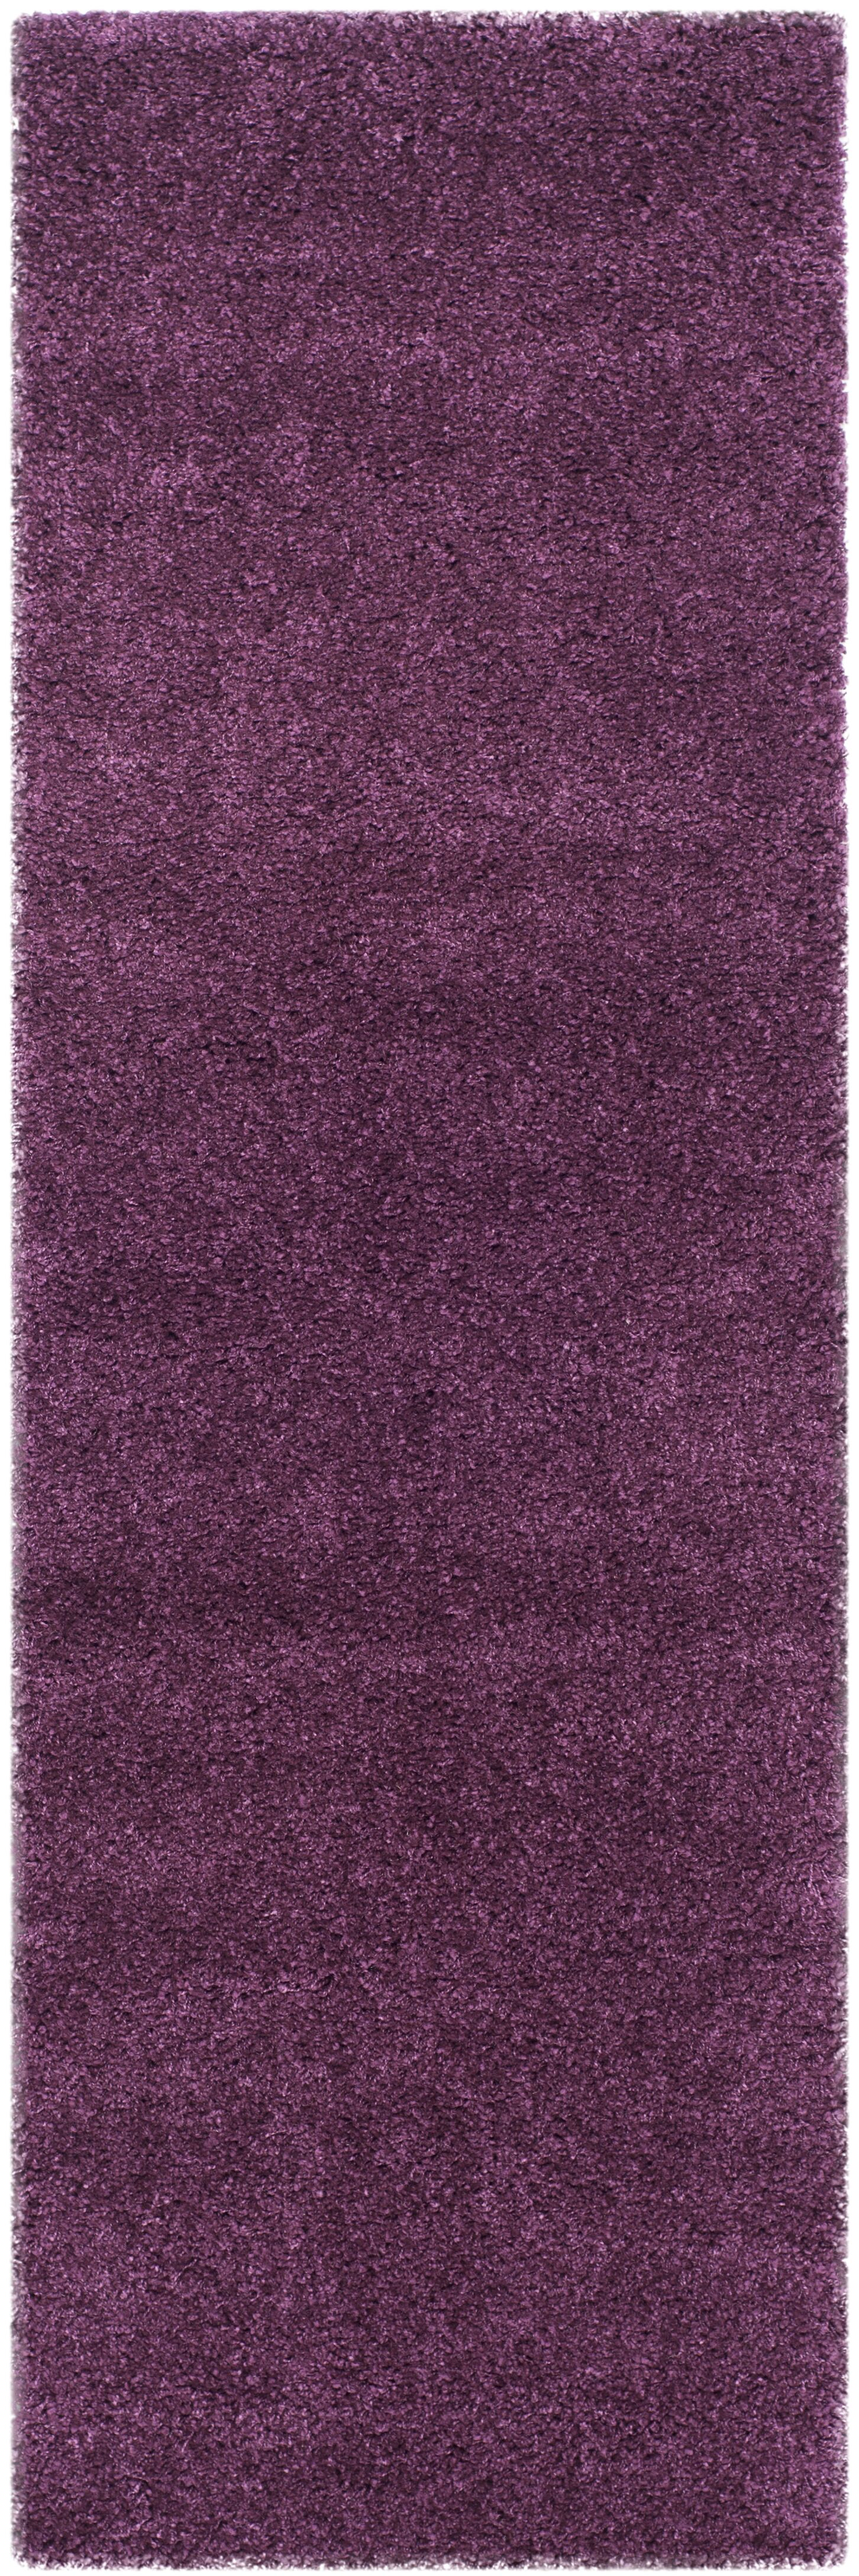 Malina Purple Area Rug Rug Size: Runner 2'3